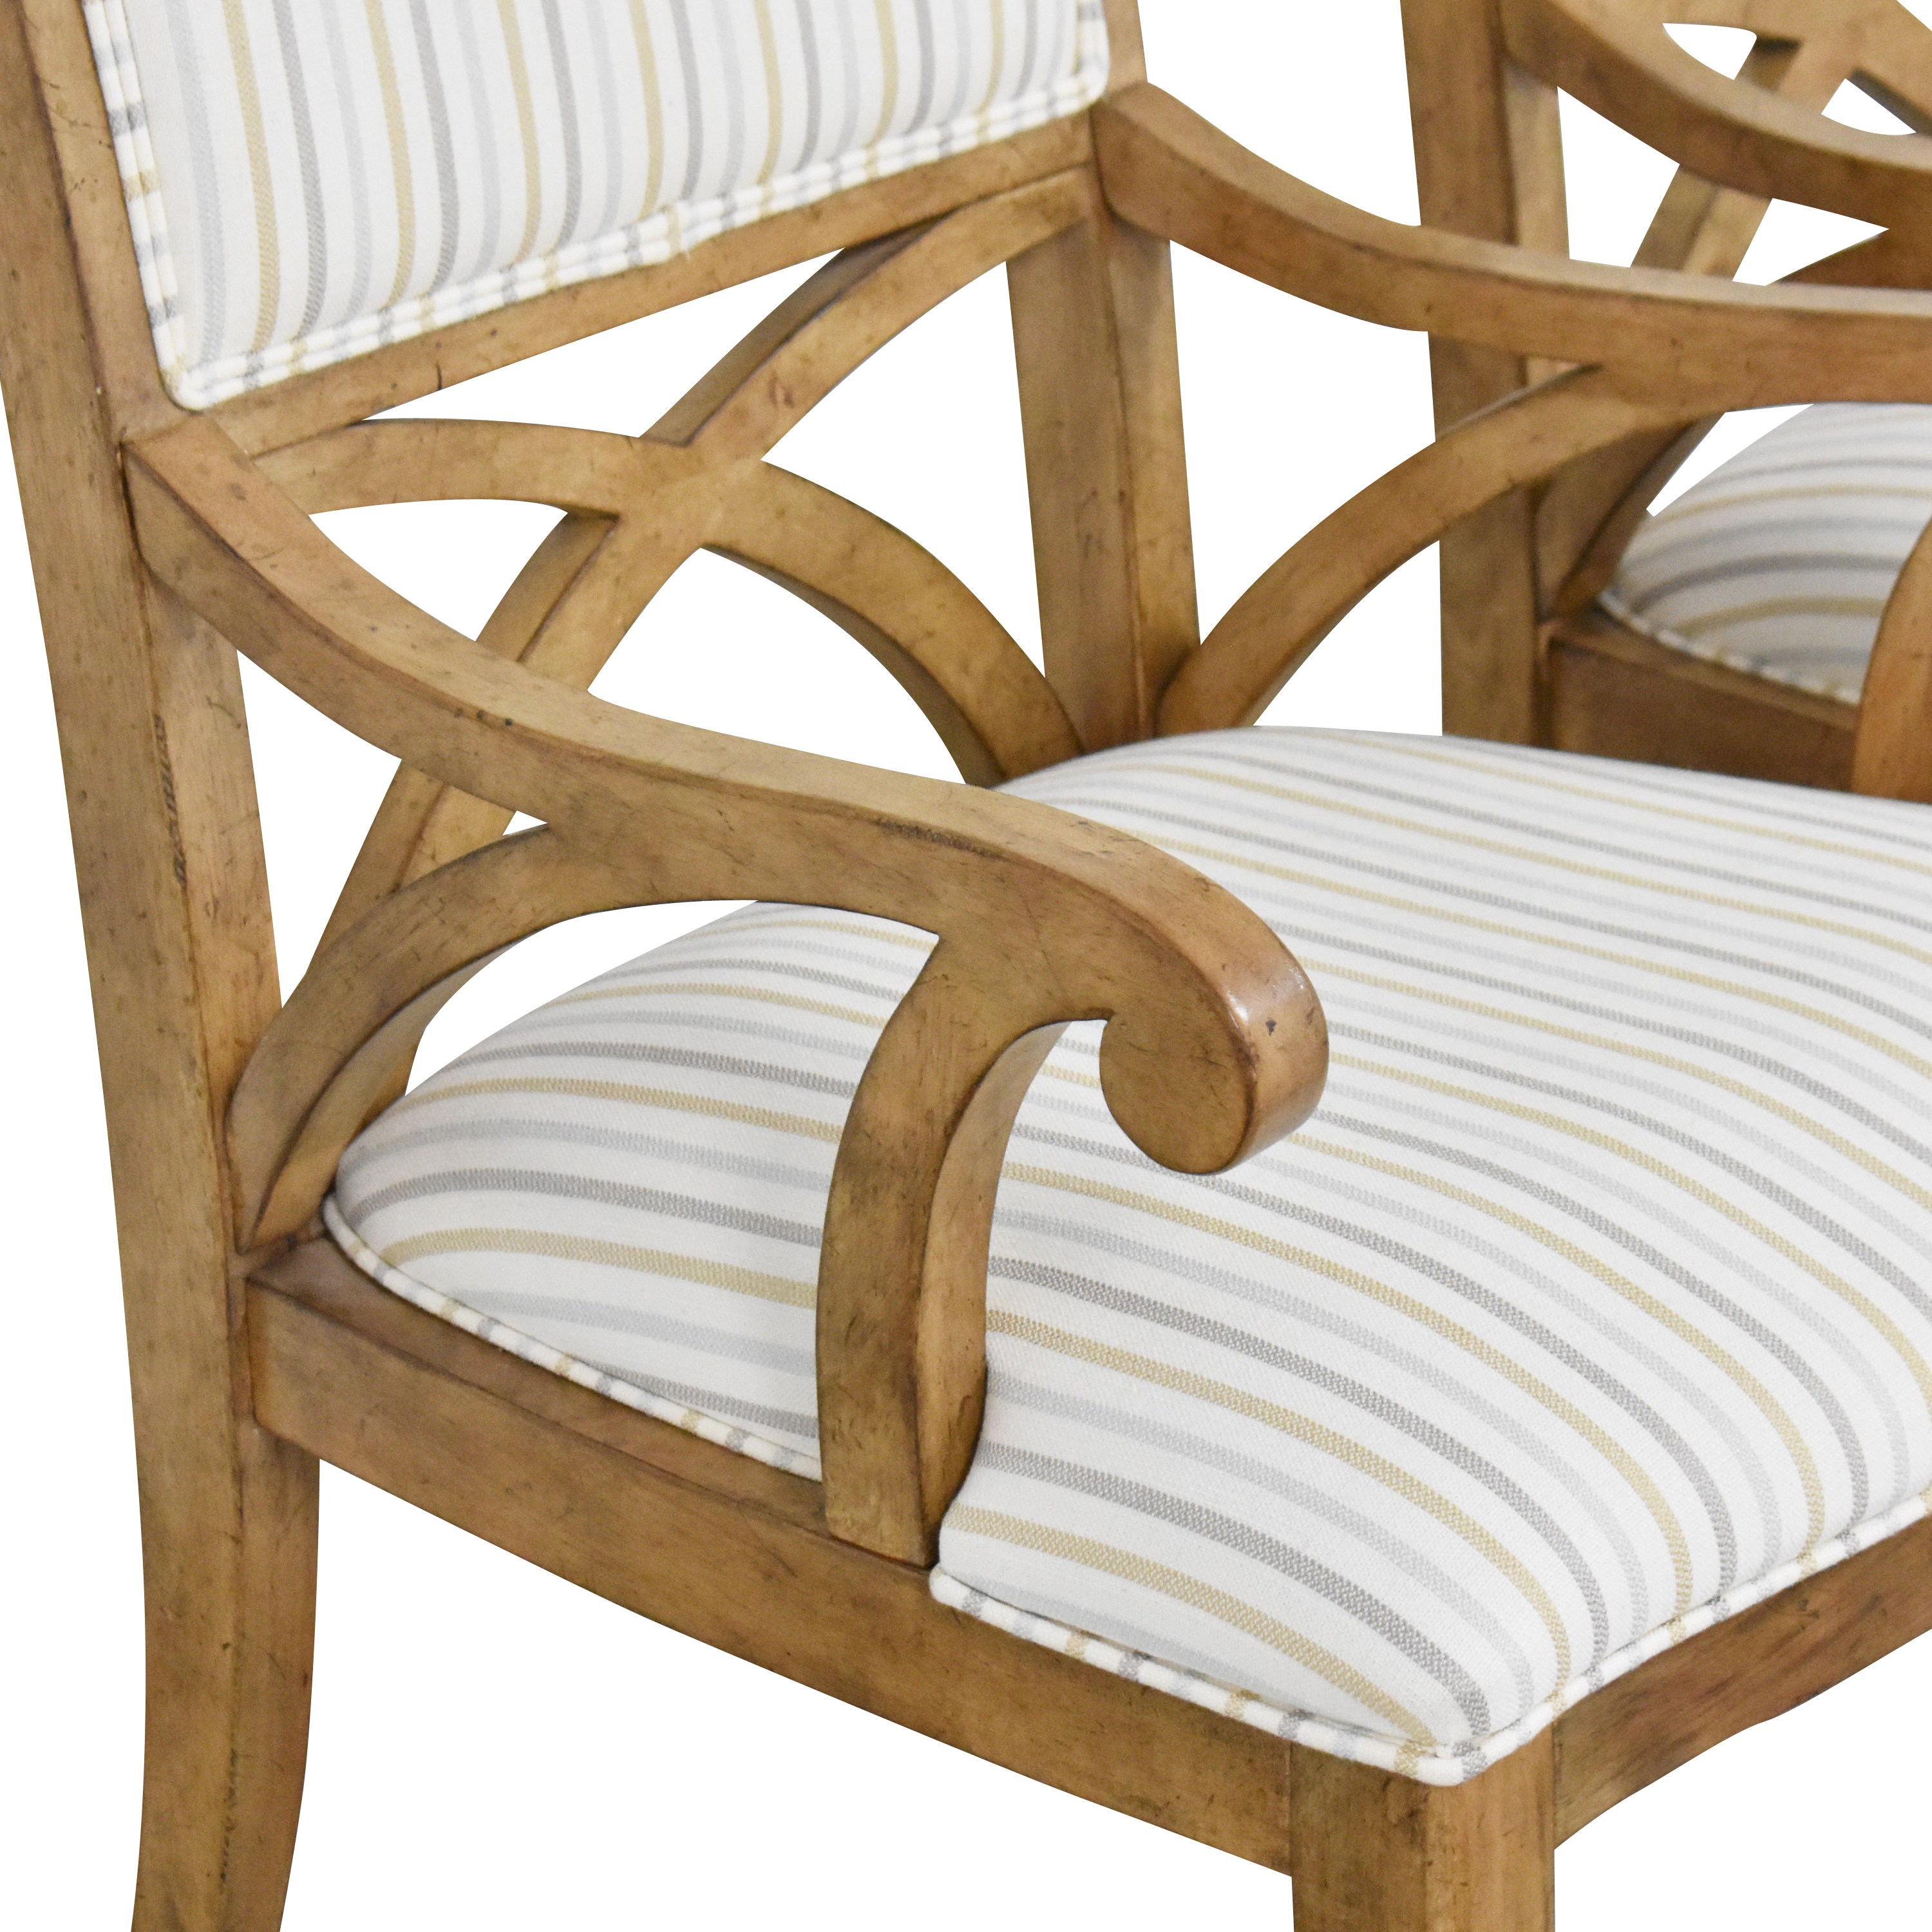 Thomasville Thomasville Upholstered Dining Chairs dimensions